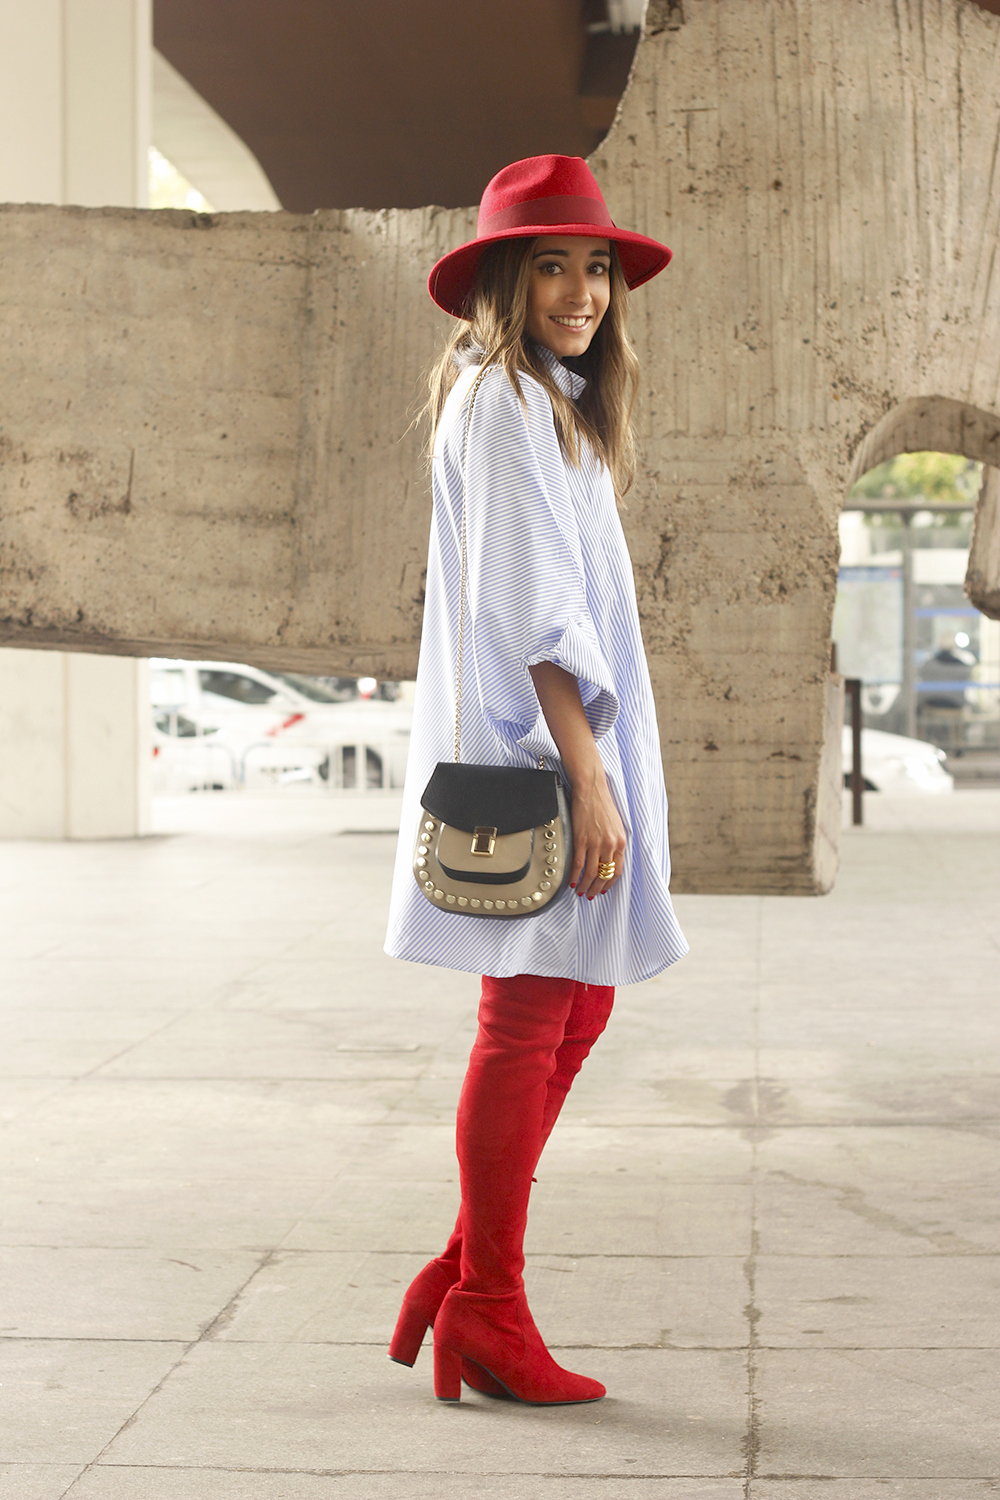 striped dress red over the knee boots red hat accessories fashion outfit style autumn05